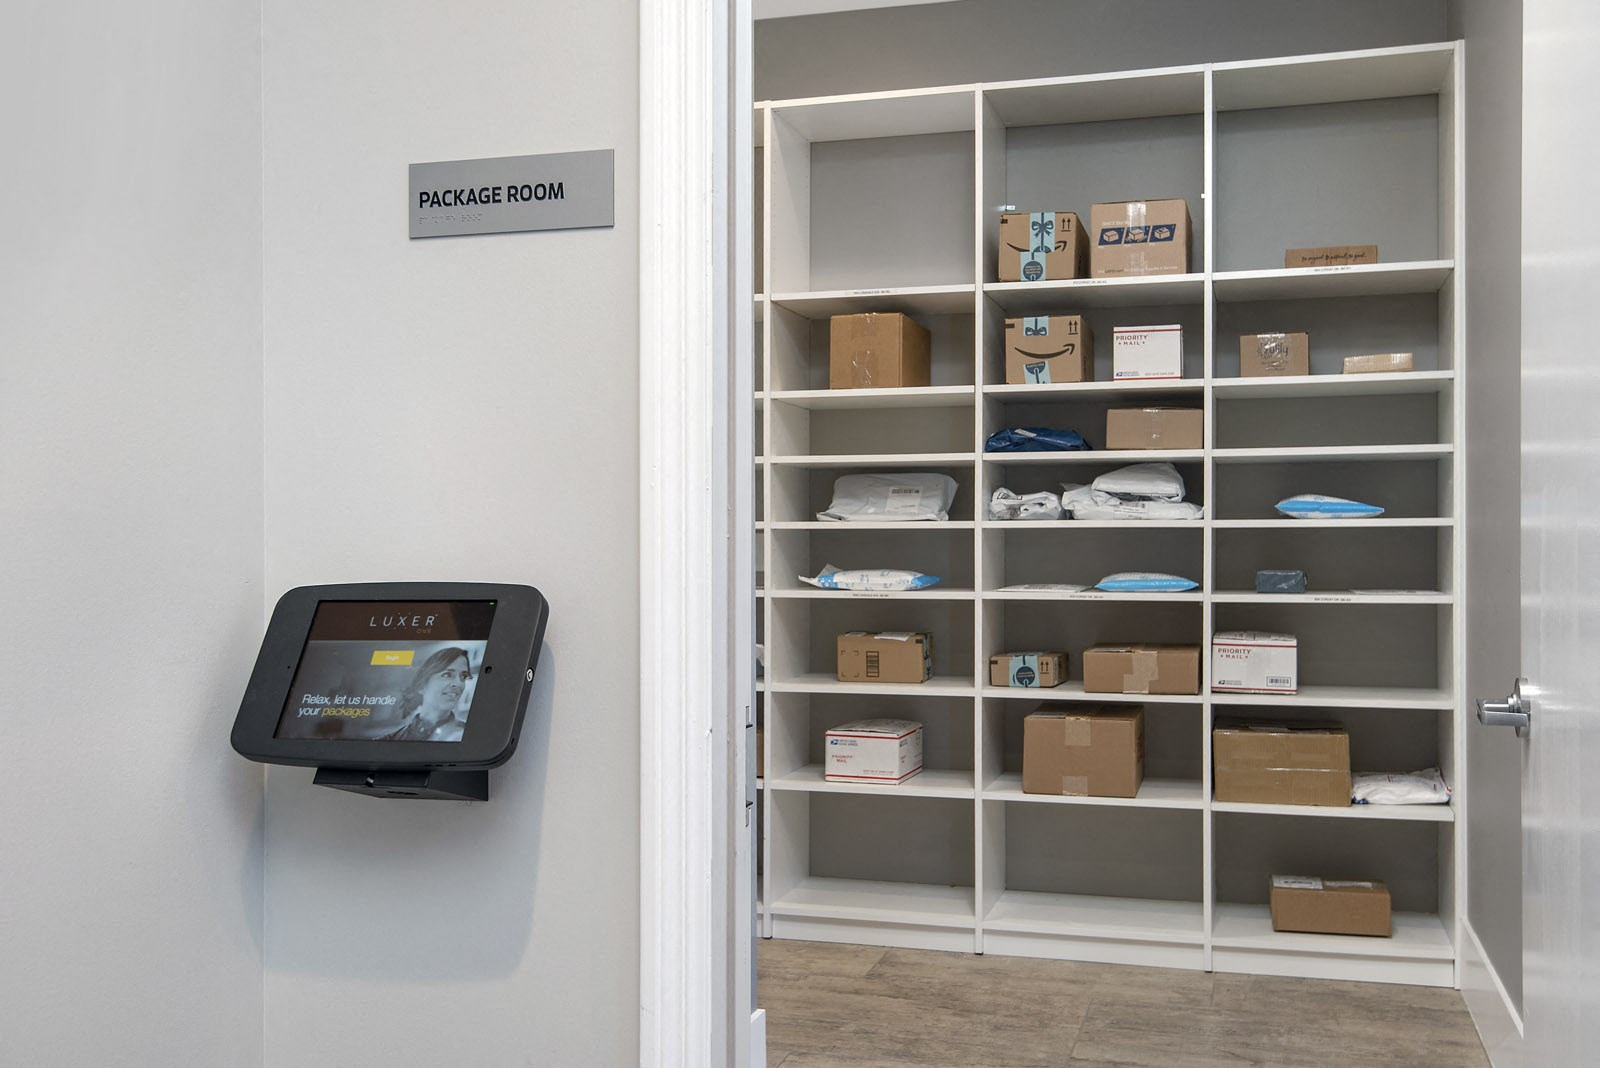 Package room for mail